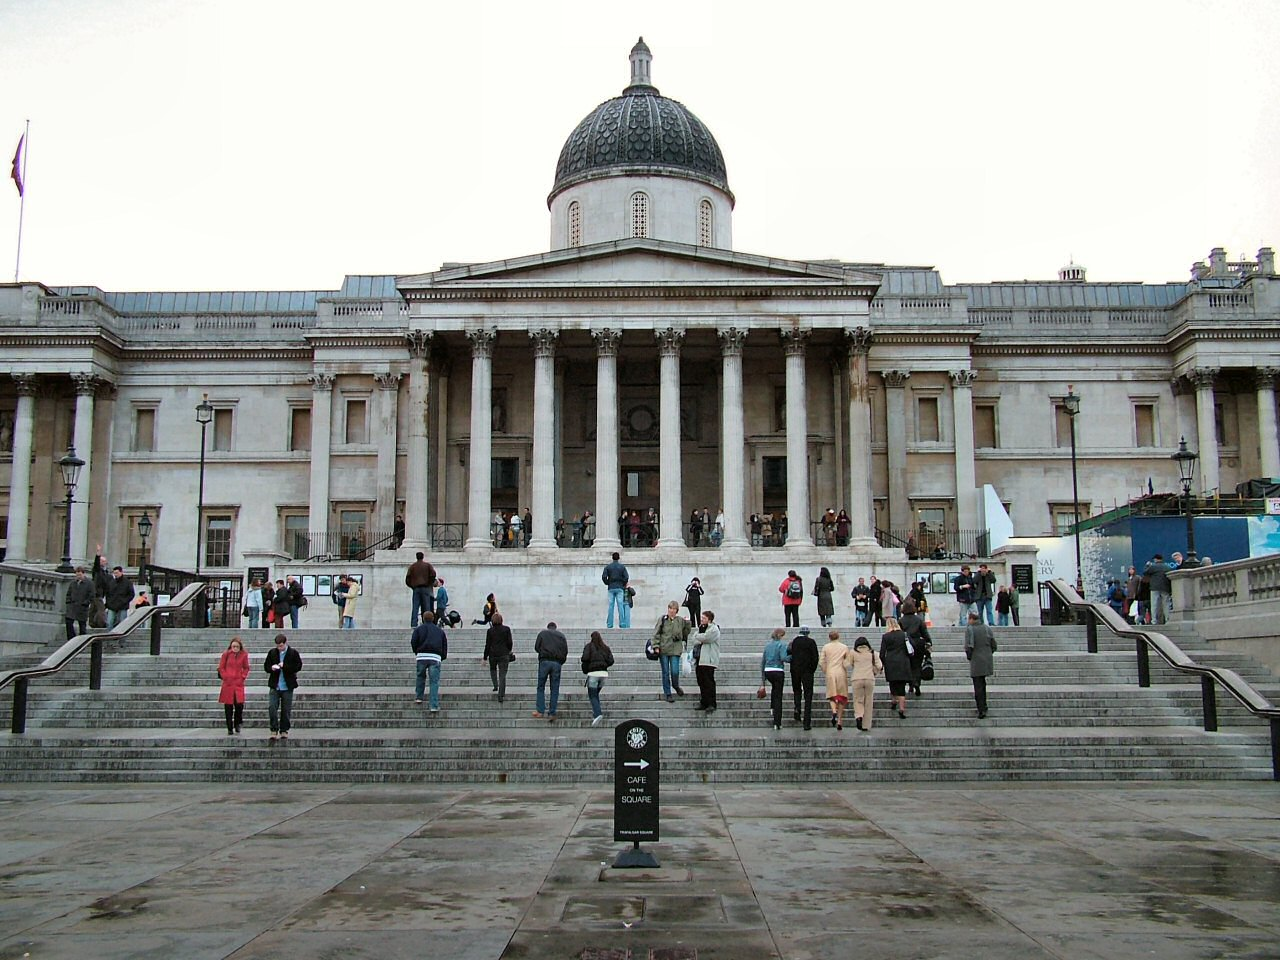 http://upload.wikimedia.org/wikipedia/commons/4/4b/National_Gallery_head-on_shot.jpg